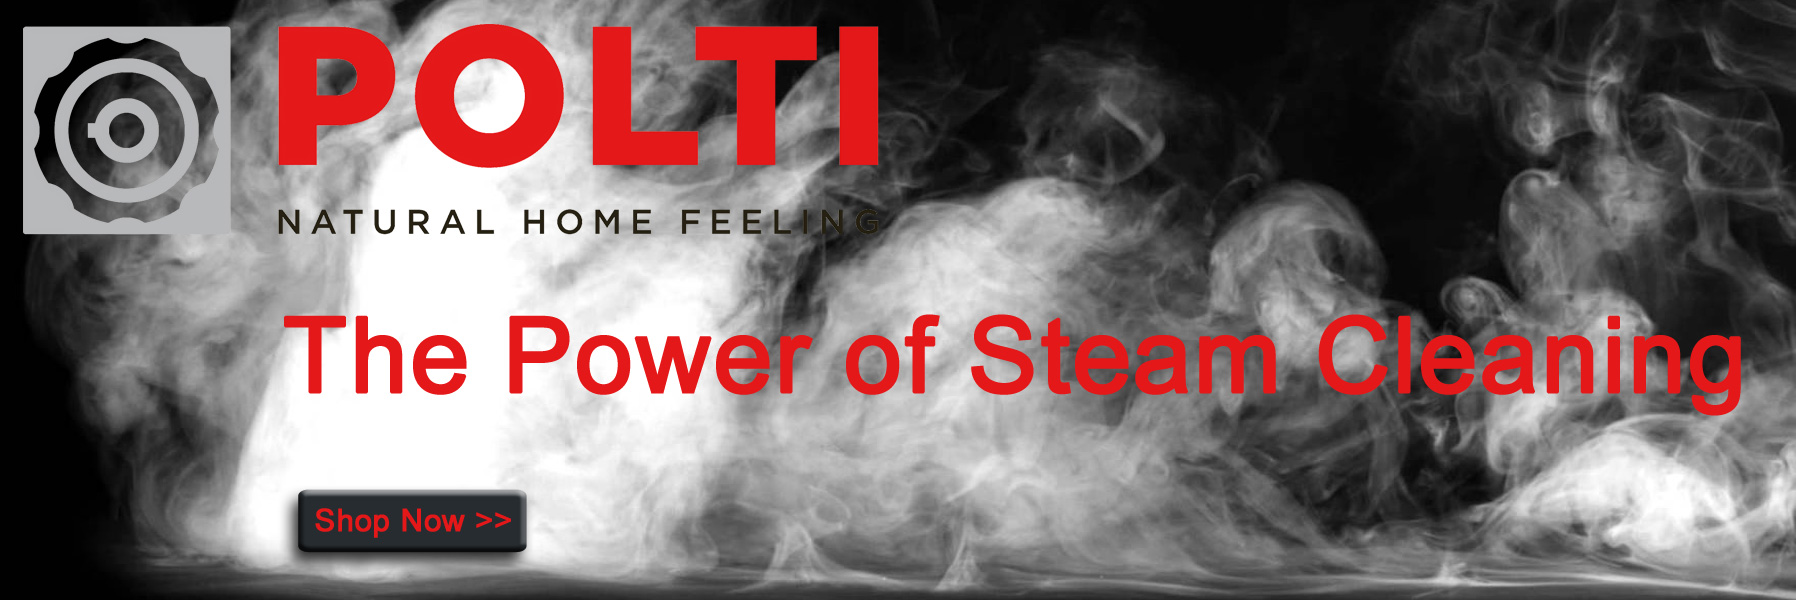 Polti Steam Cleaning Spares And Accessories